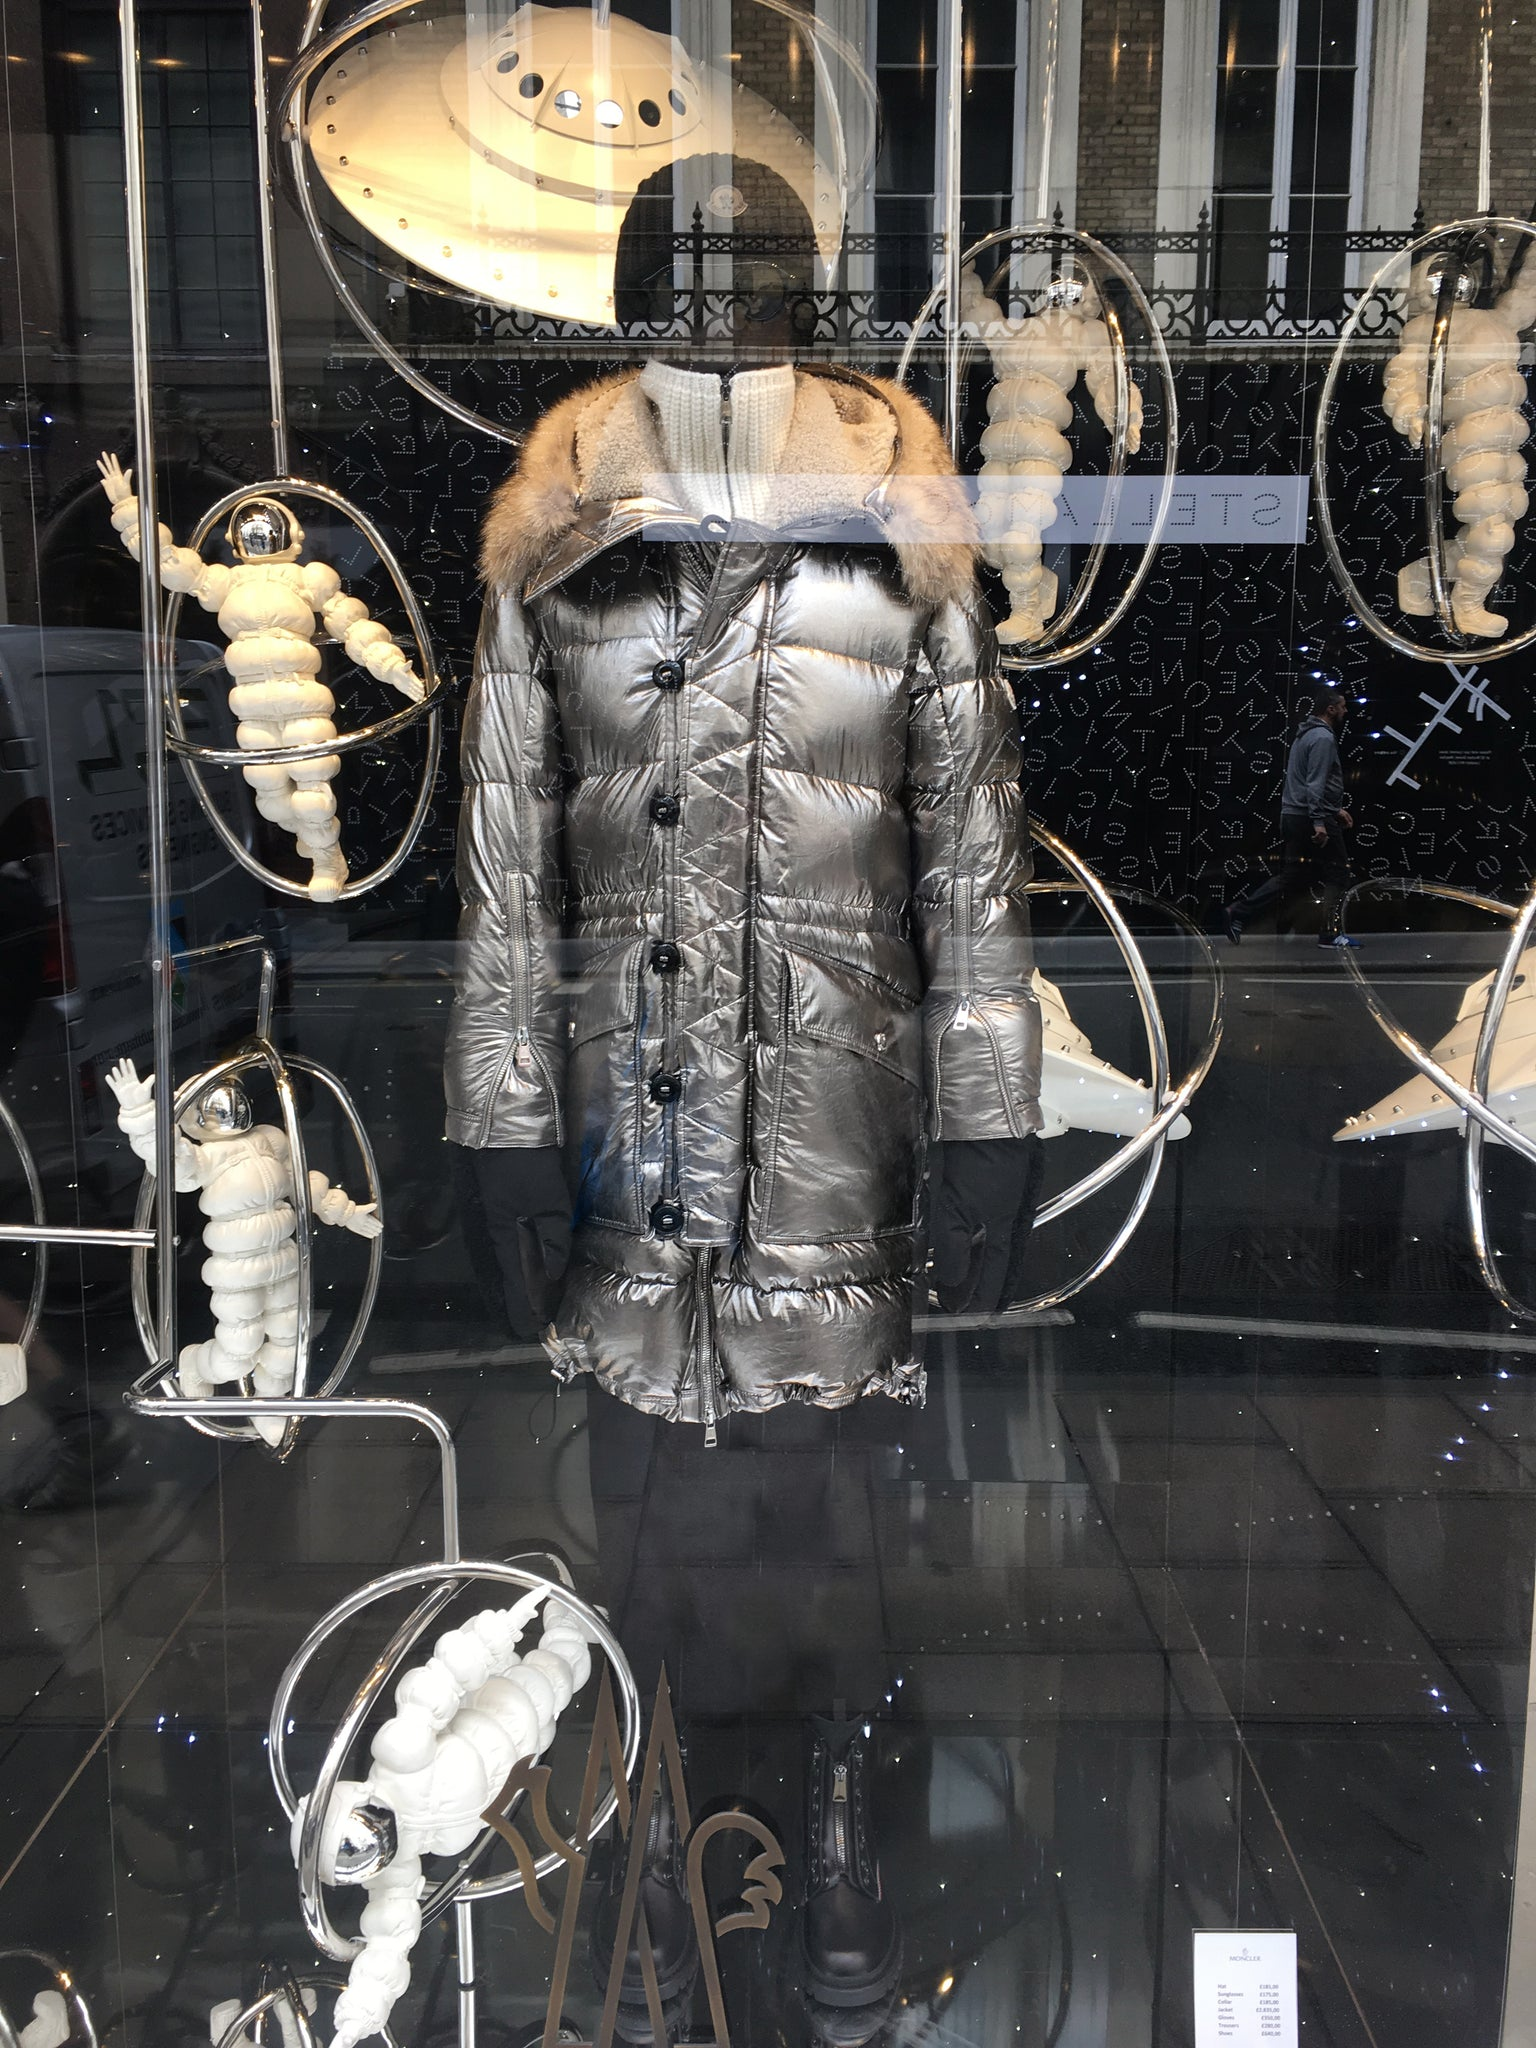 Old Bond Street London Moncler puffa coat window display Flagship store